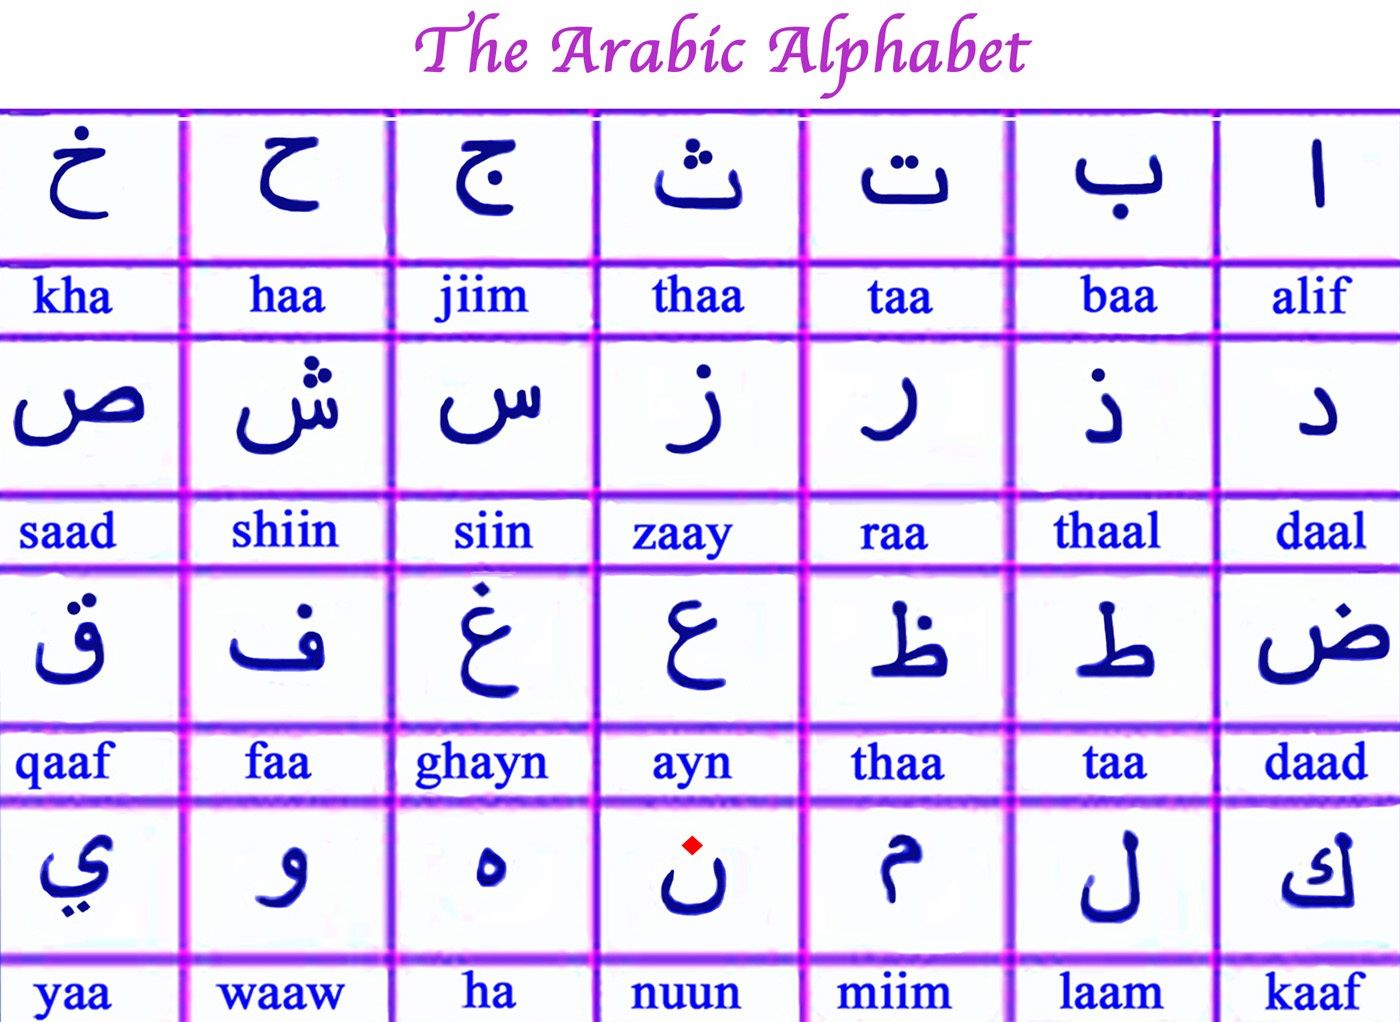 Arabic Alphabet Sheets To Learn With Images